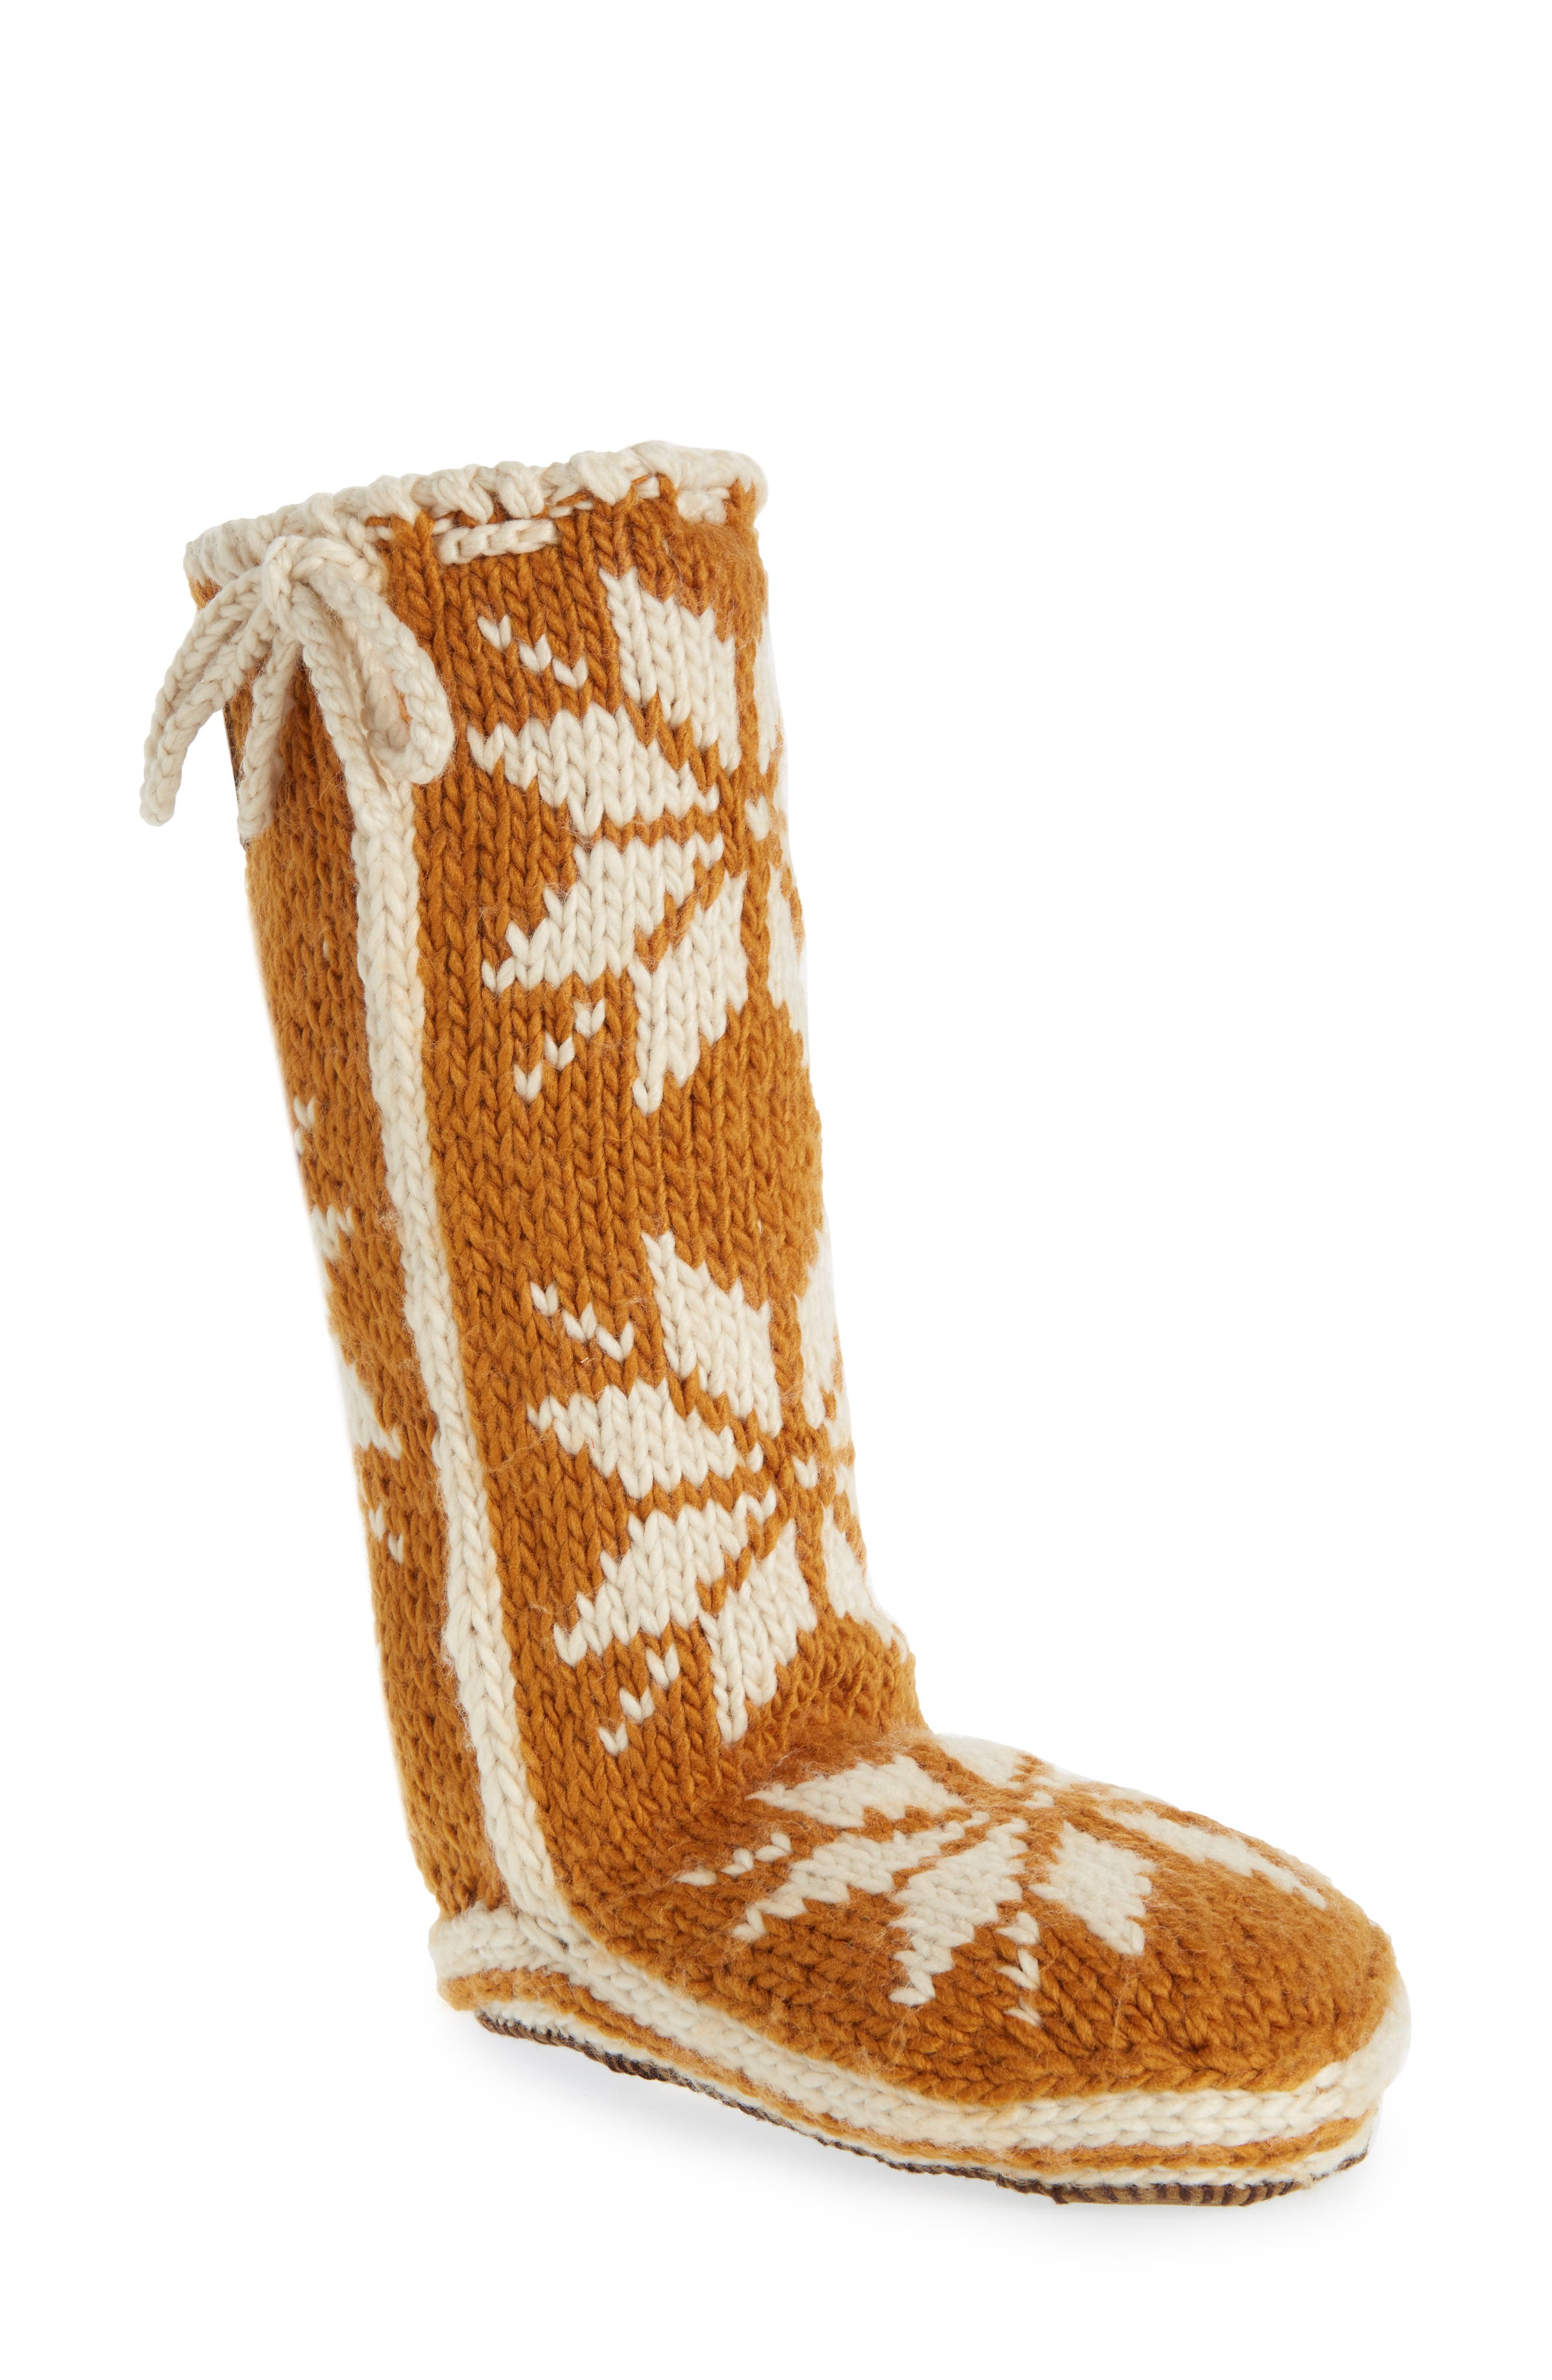 'Chalet' Socks,                         Main,                         color, CATHAY SPICE FABRIC